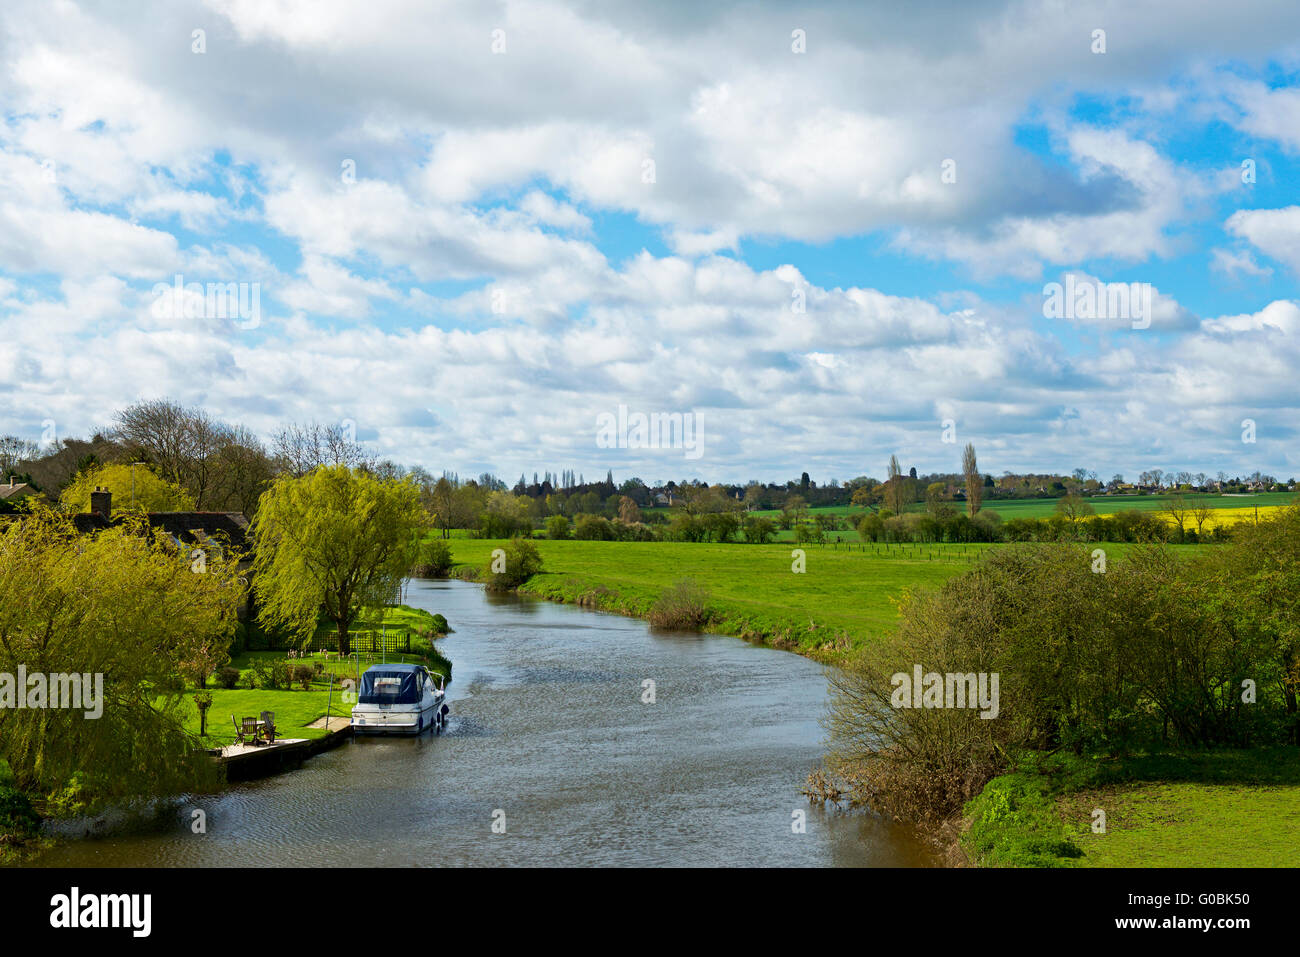 The River Nene at Wansford, Cambridgeshire, England UK - Stock Image